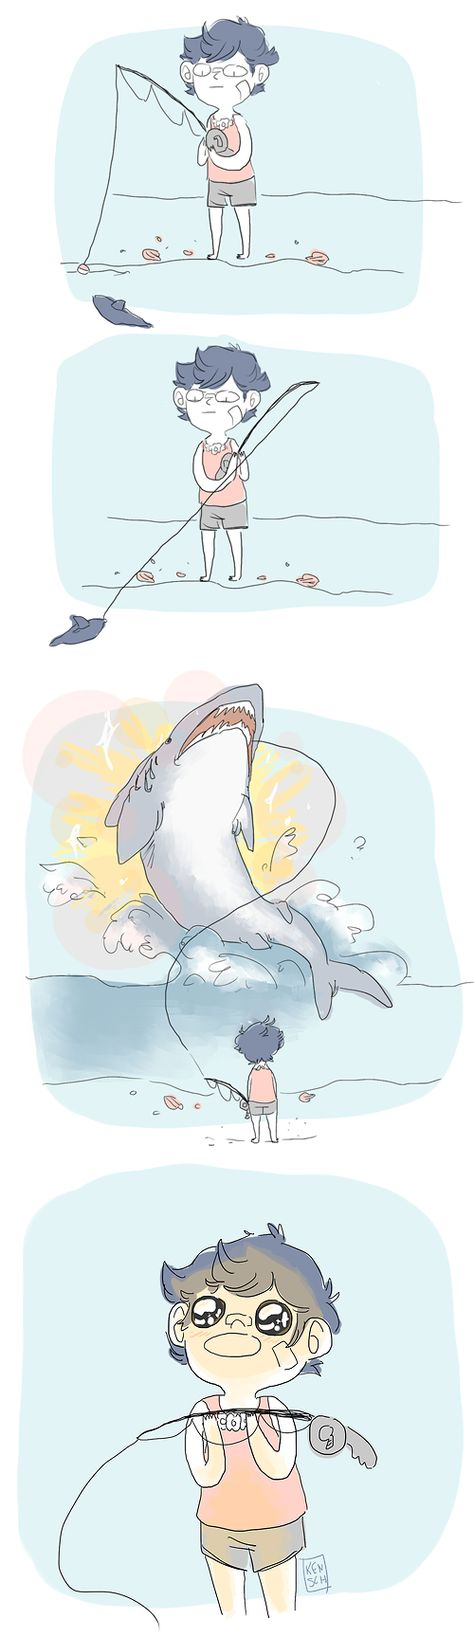 This surprised me too, when I 1st caught my very own shark! Lol I was so excited